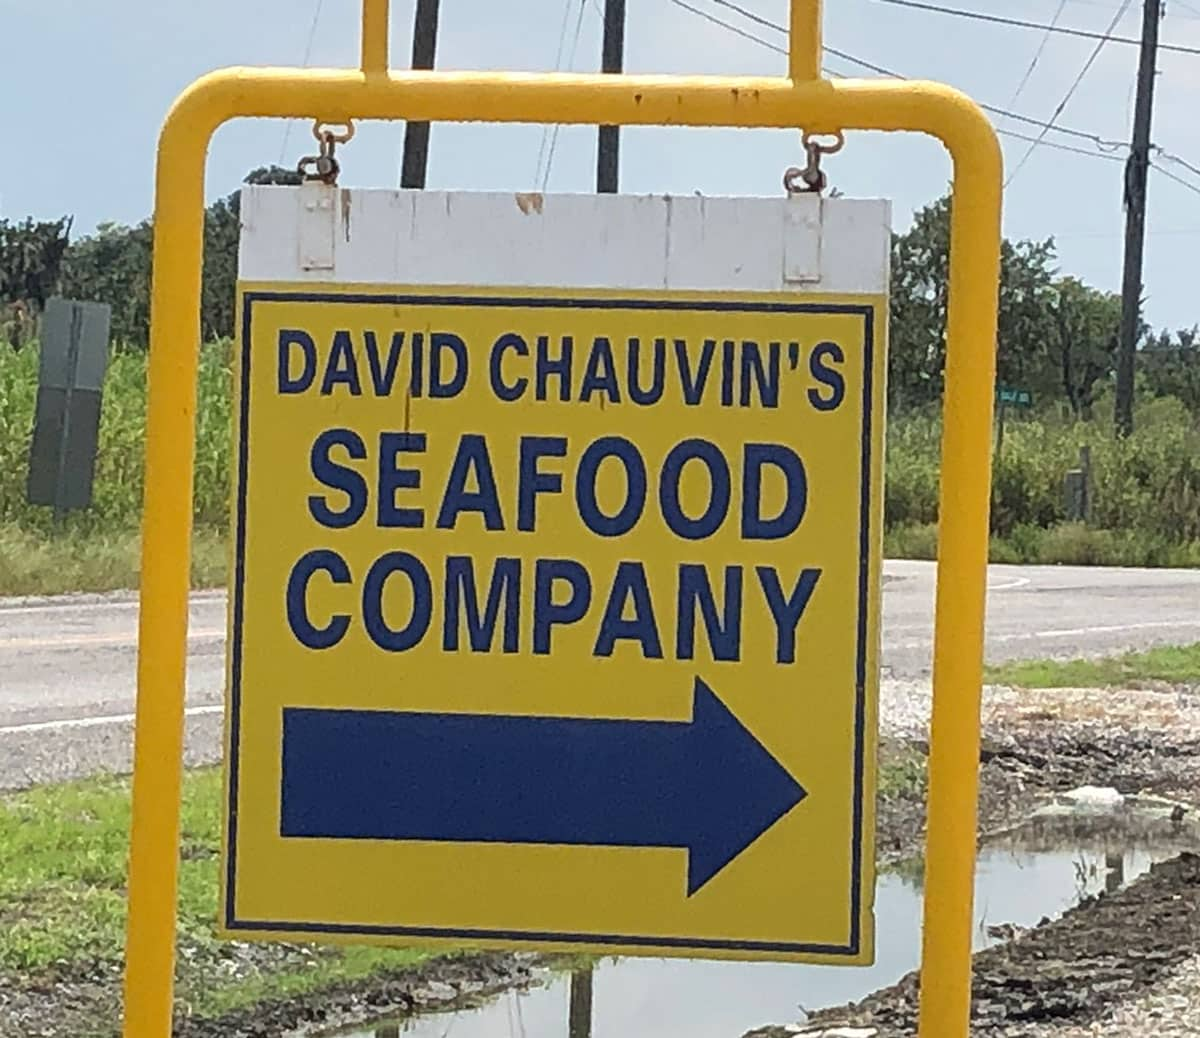 yellow outdoor sign for david chauvin's seafood company